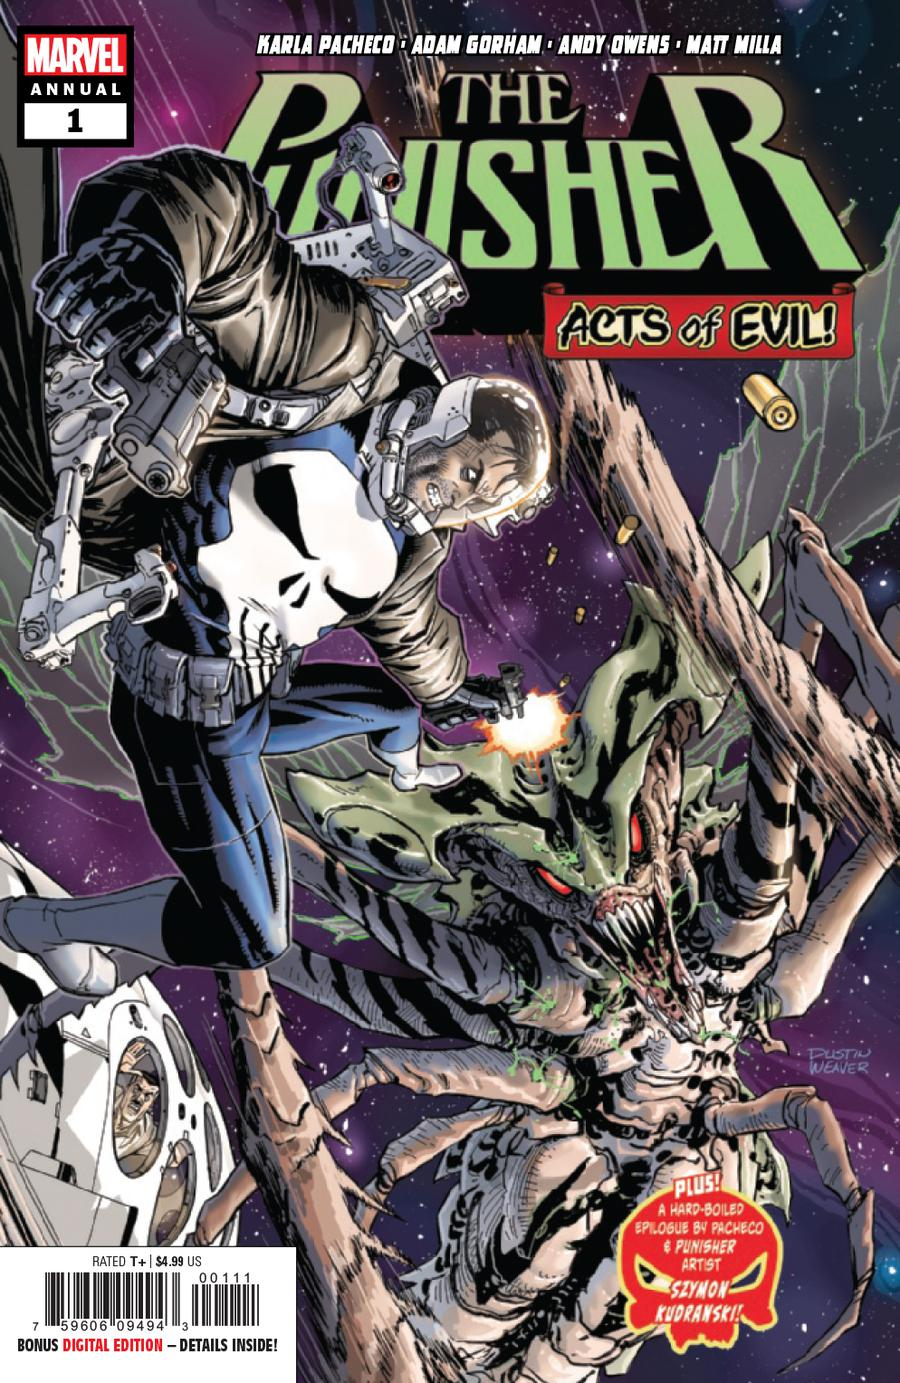 Punisher Vol 11 Annual #1 Cover A Regular Dustin Weaver Cover (Acts Of Evil Tie-In)